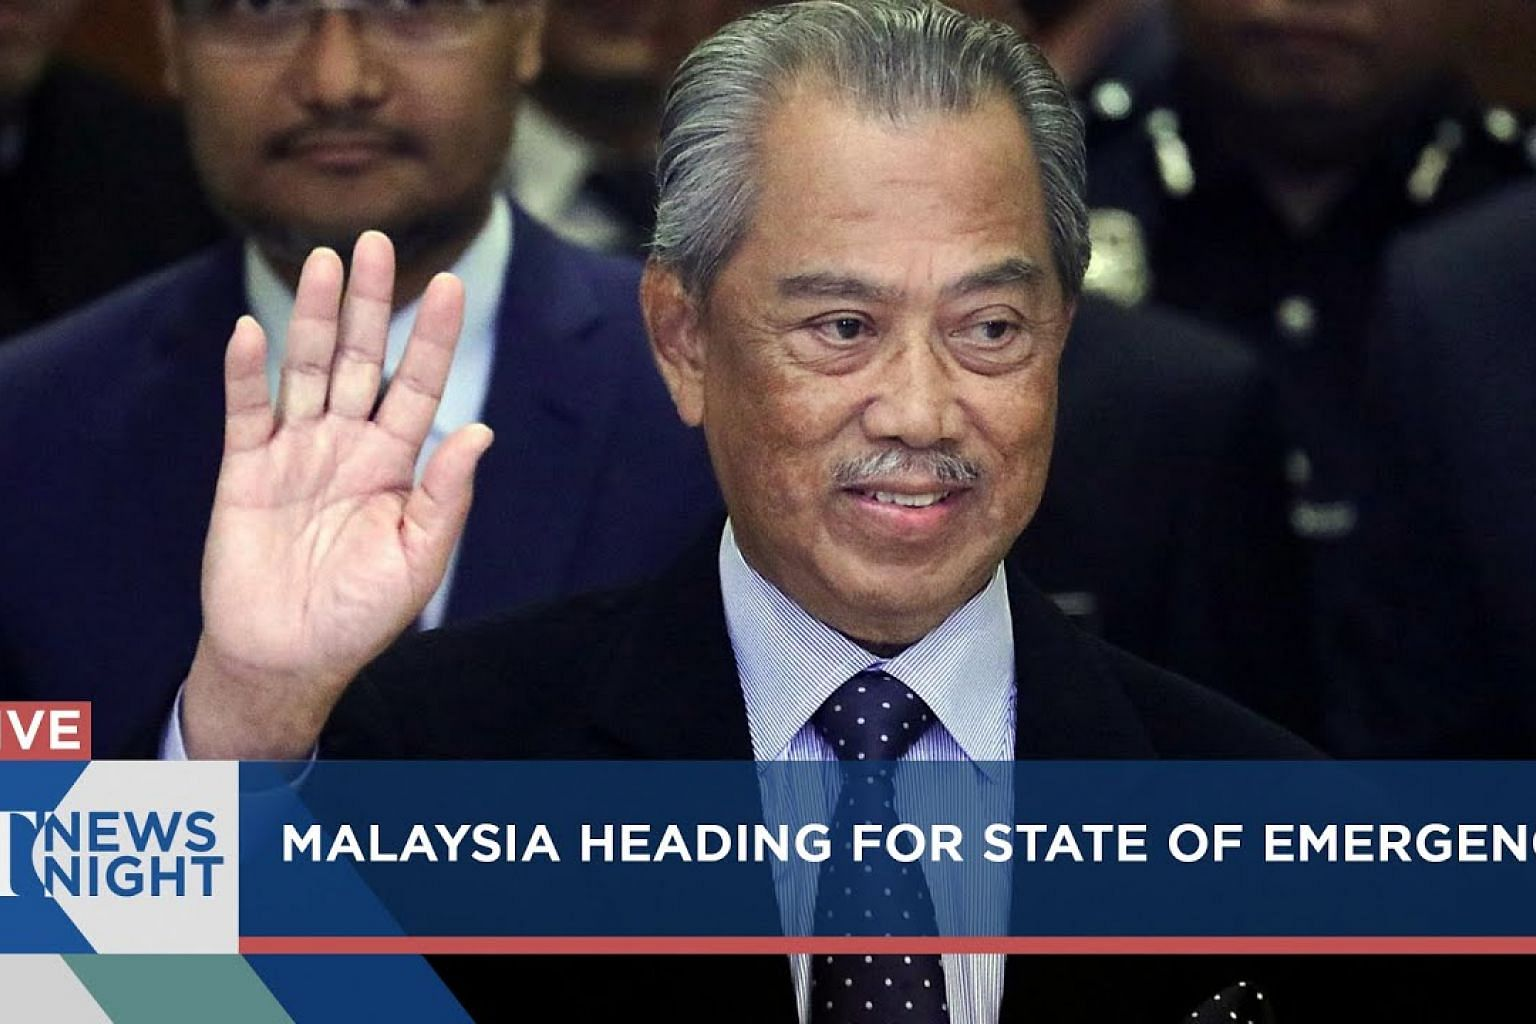 M'sia heading for economic emergency | ST NEWS NIGHT